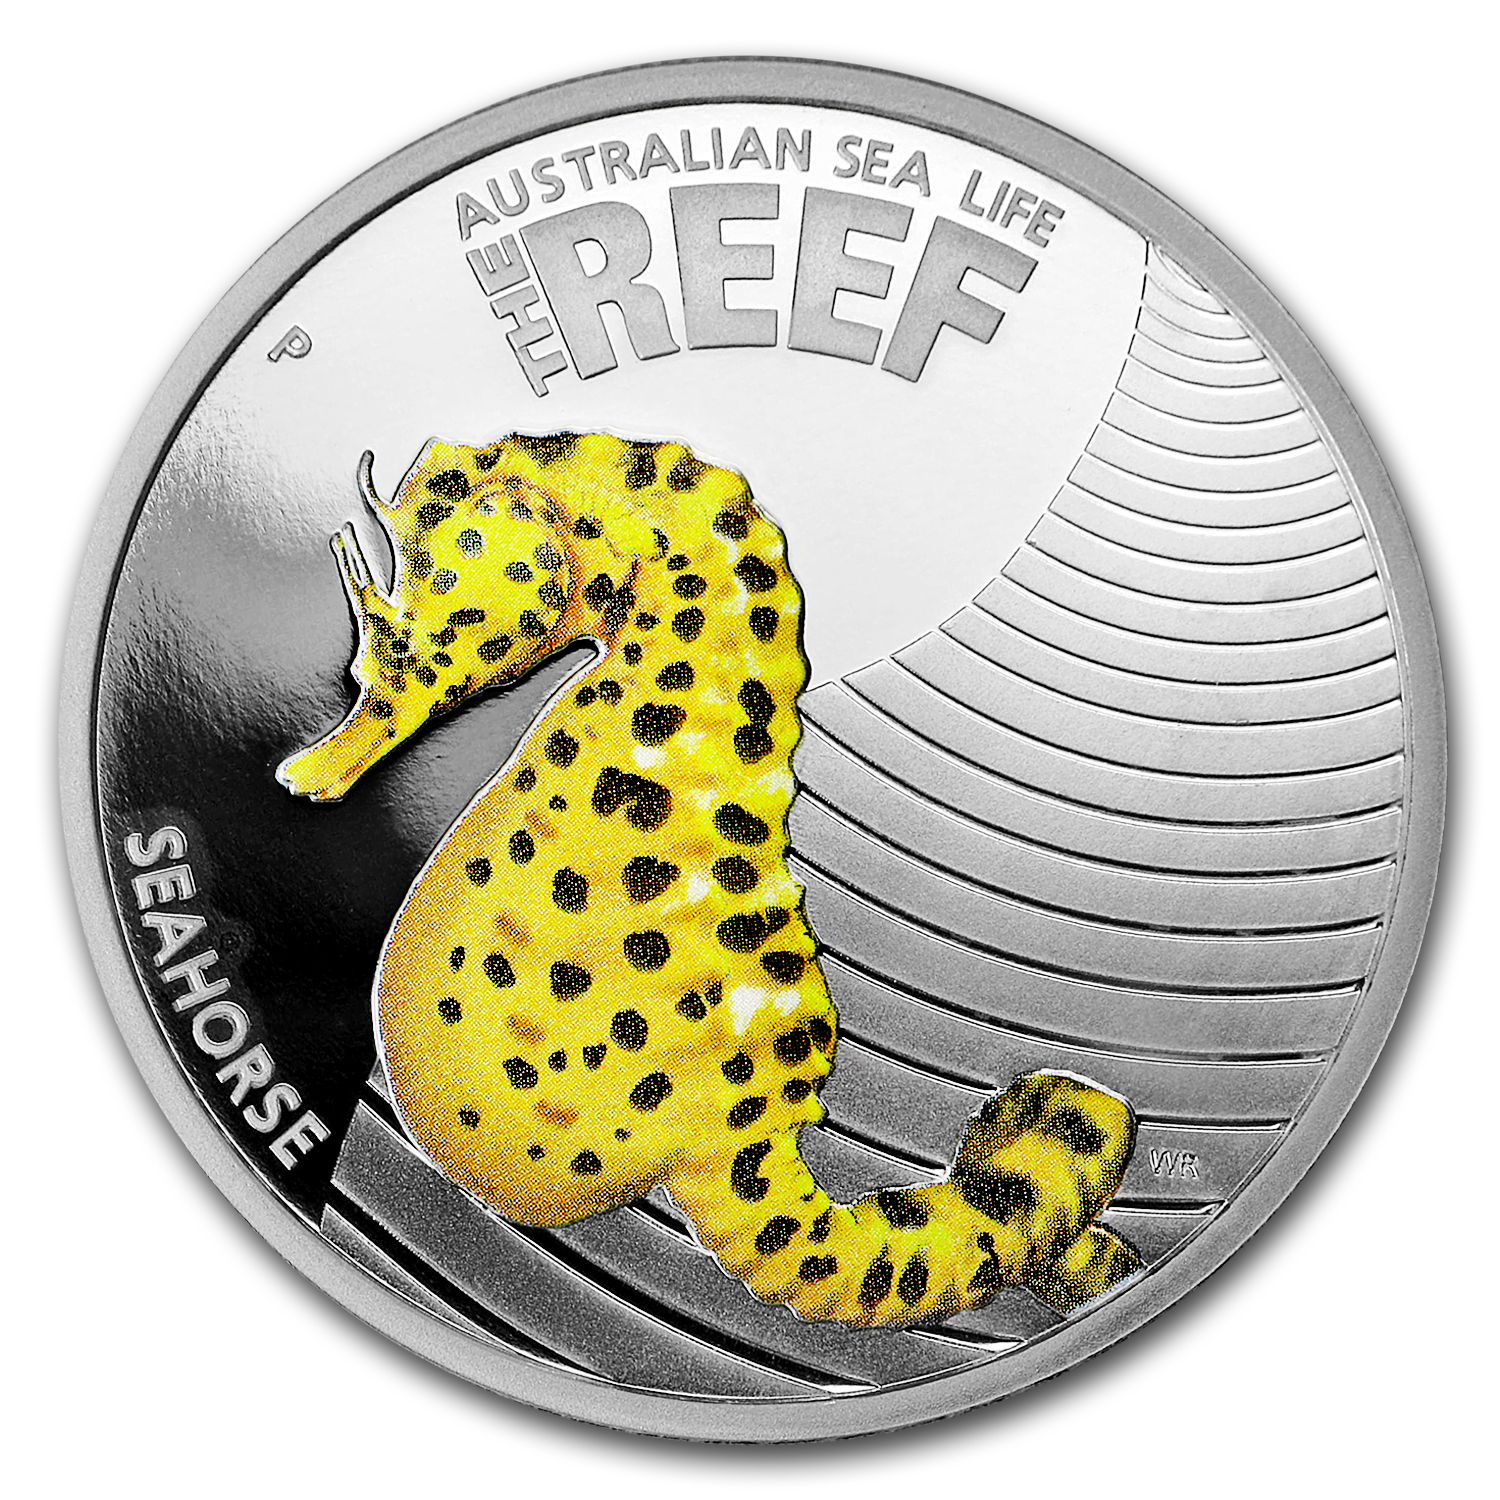 2010 Australia 1/2 oz Silver Sea Horse Proof